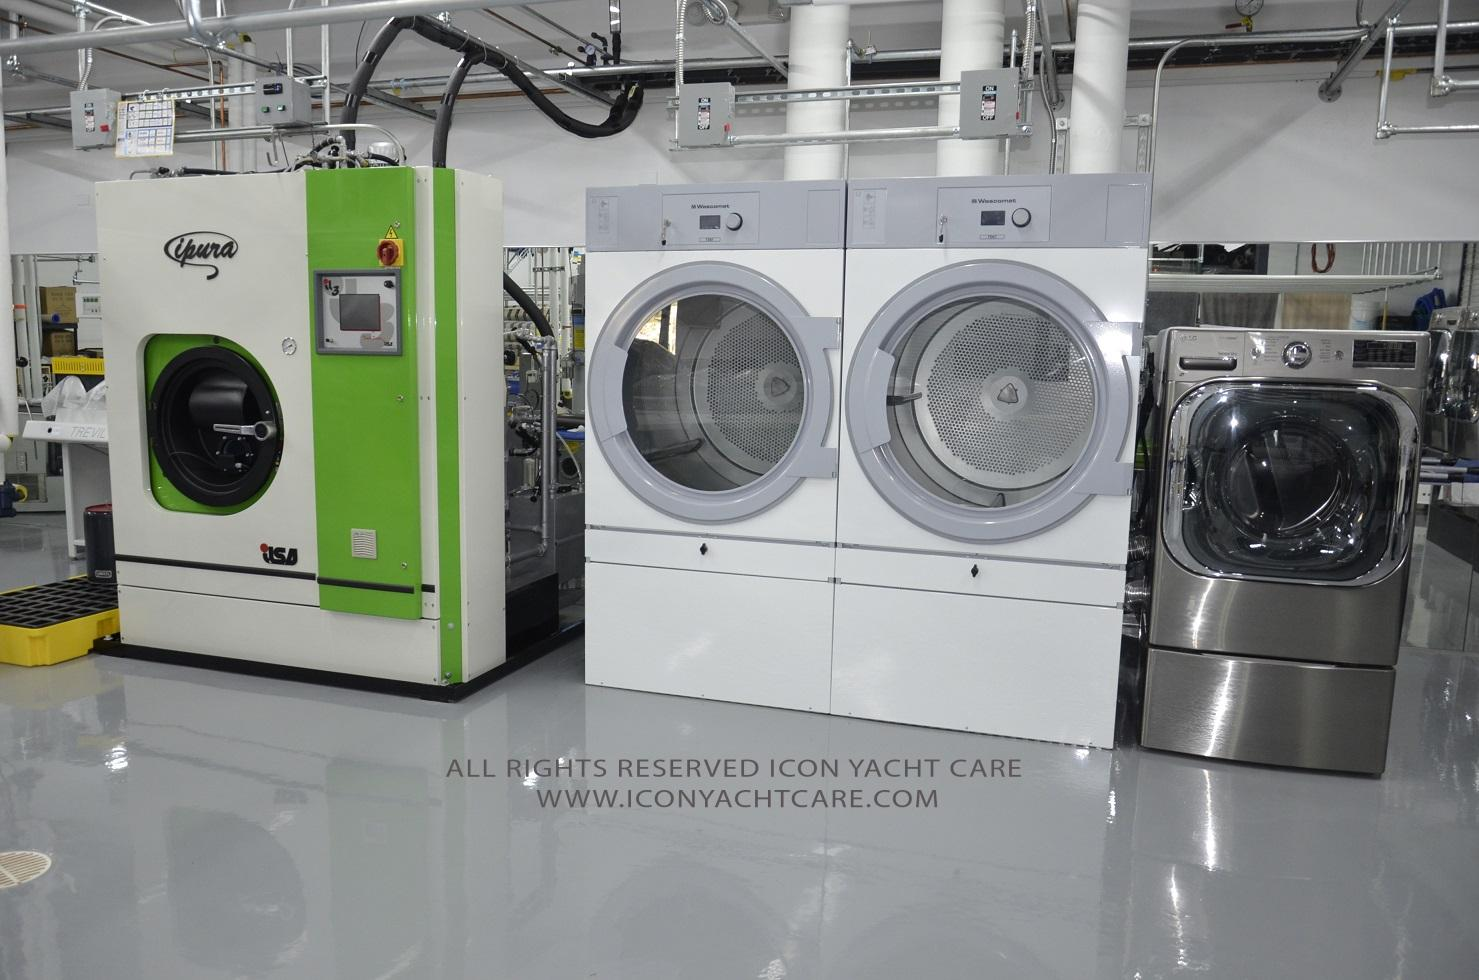 Yacht Laundry Cleaning Service